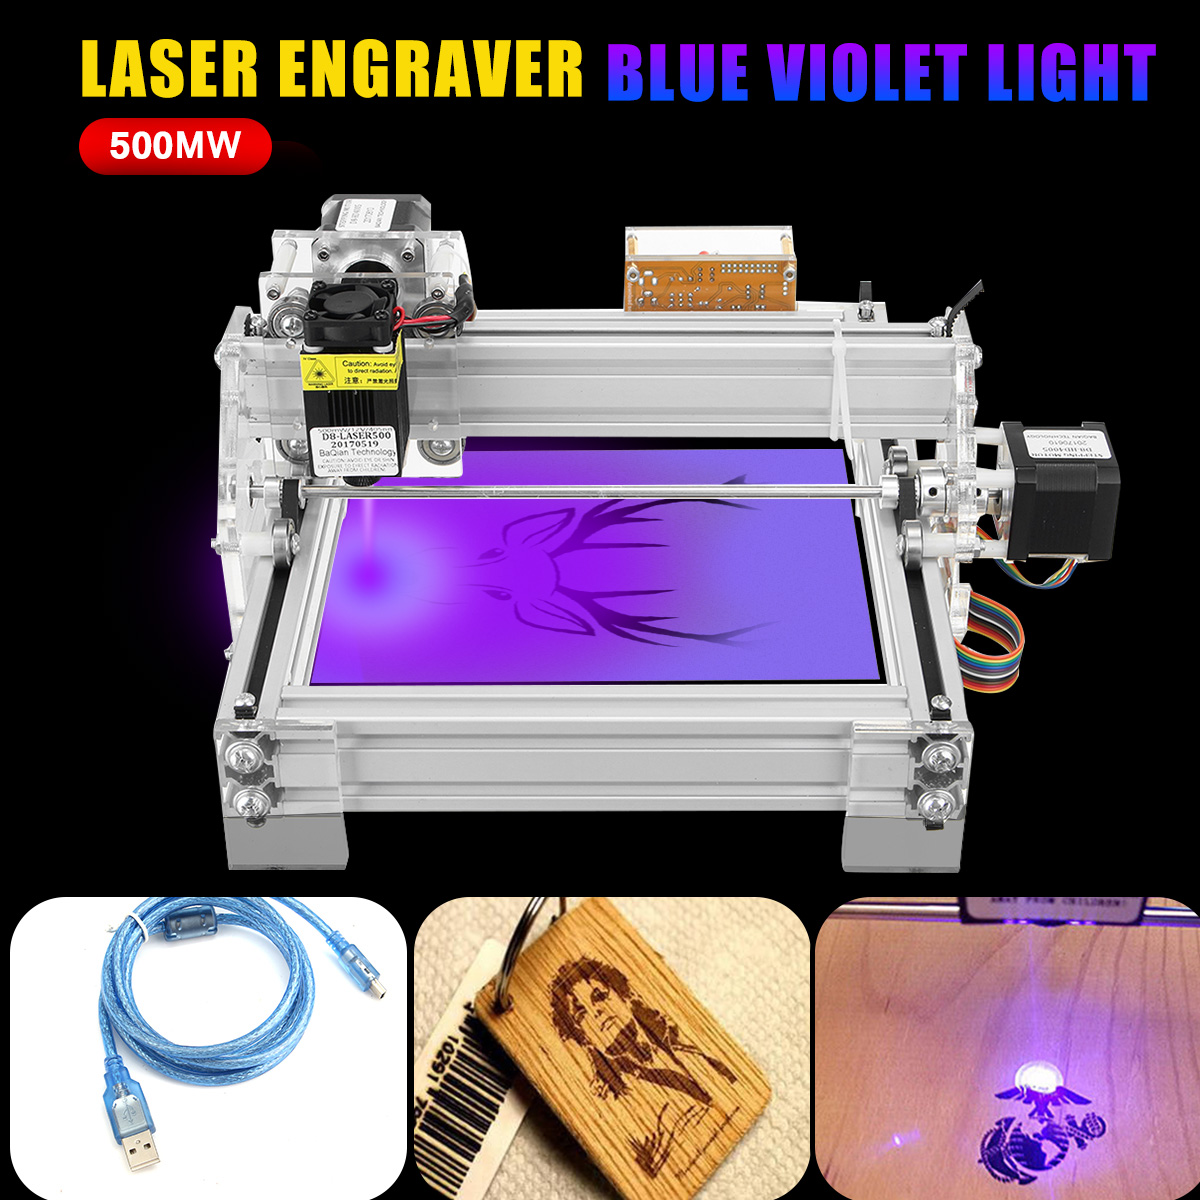 2 Axis 2 Phase 4 Wire 500mw Laser Engraving Machine USB Laser Engraving Marking Machine Paper Wood Cutter DIY Printer Engraver